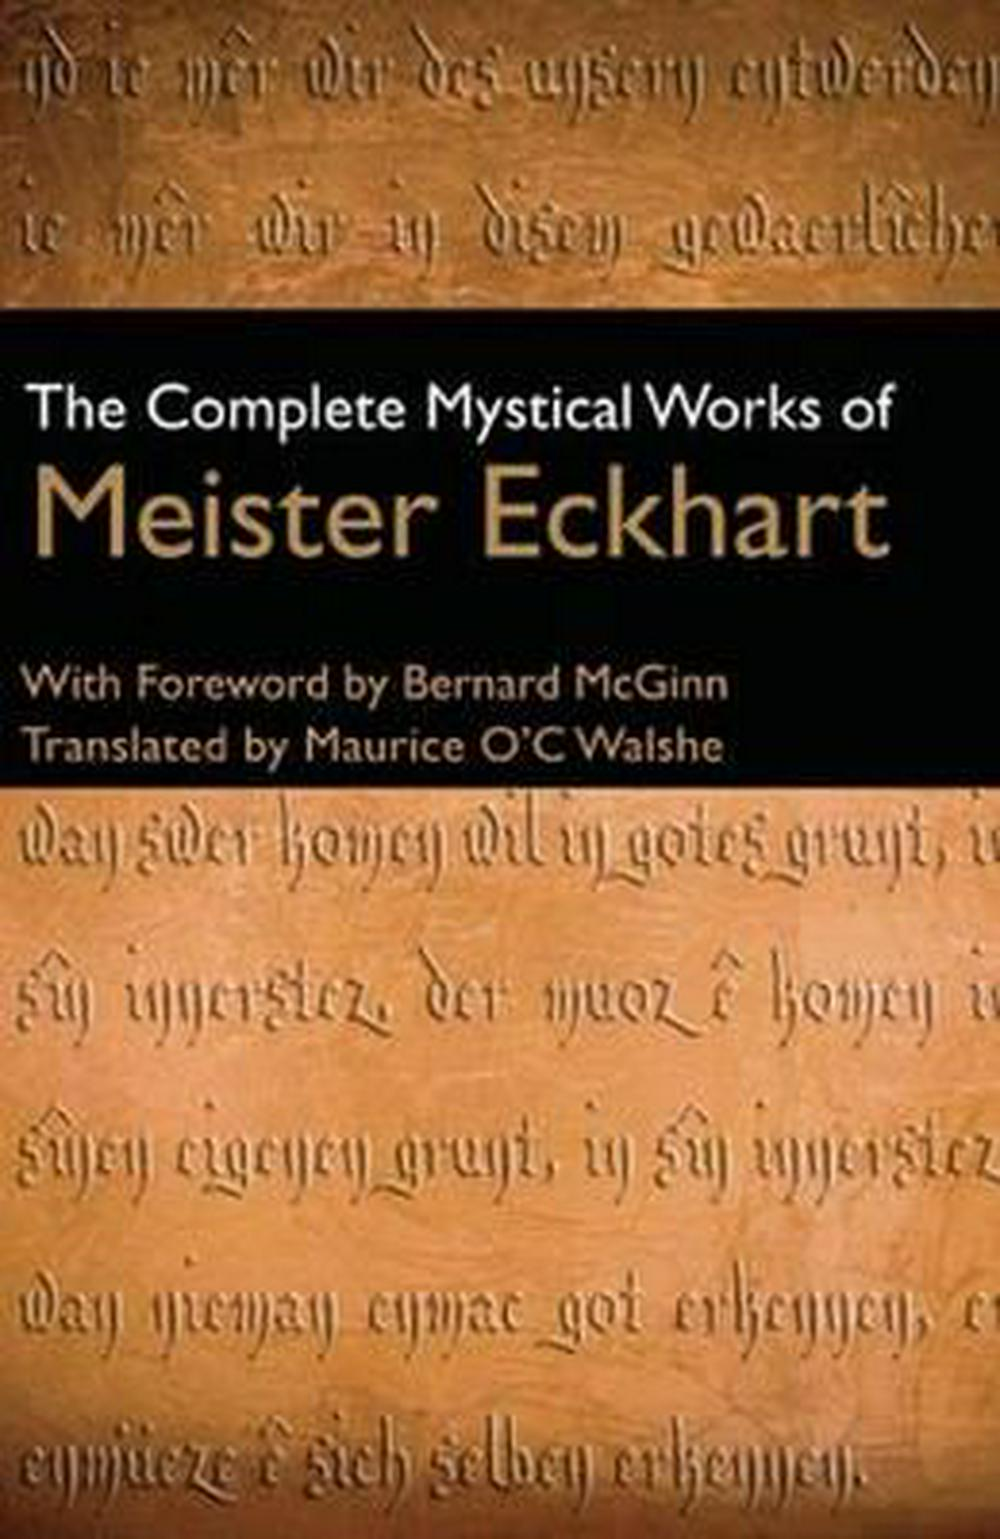 Complete Mystical Works of Meister Eckhart by Maurice O'C. Walshe, ISBN: 9780824525170